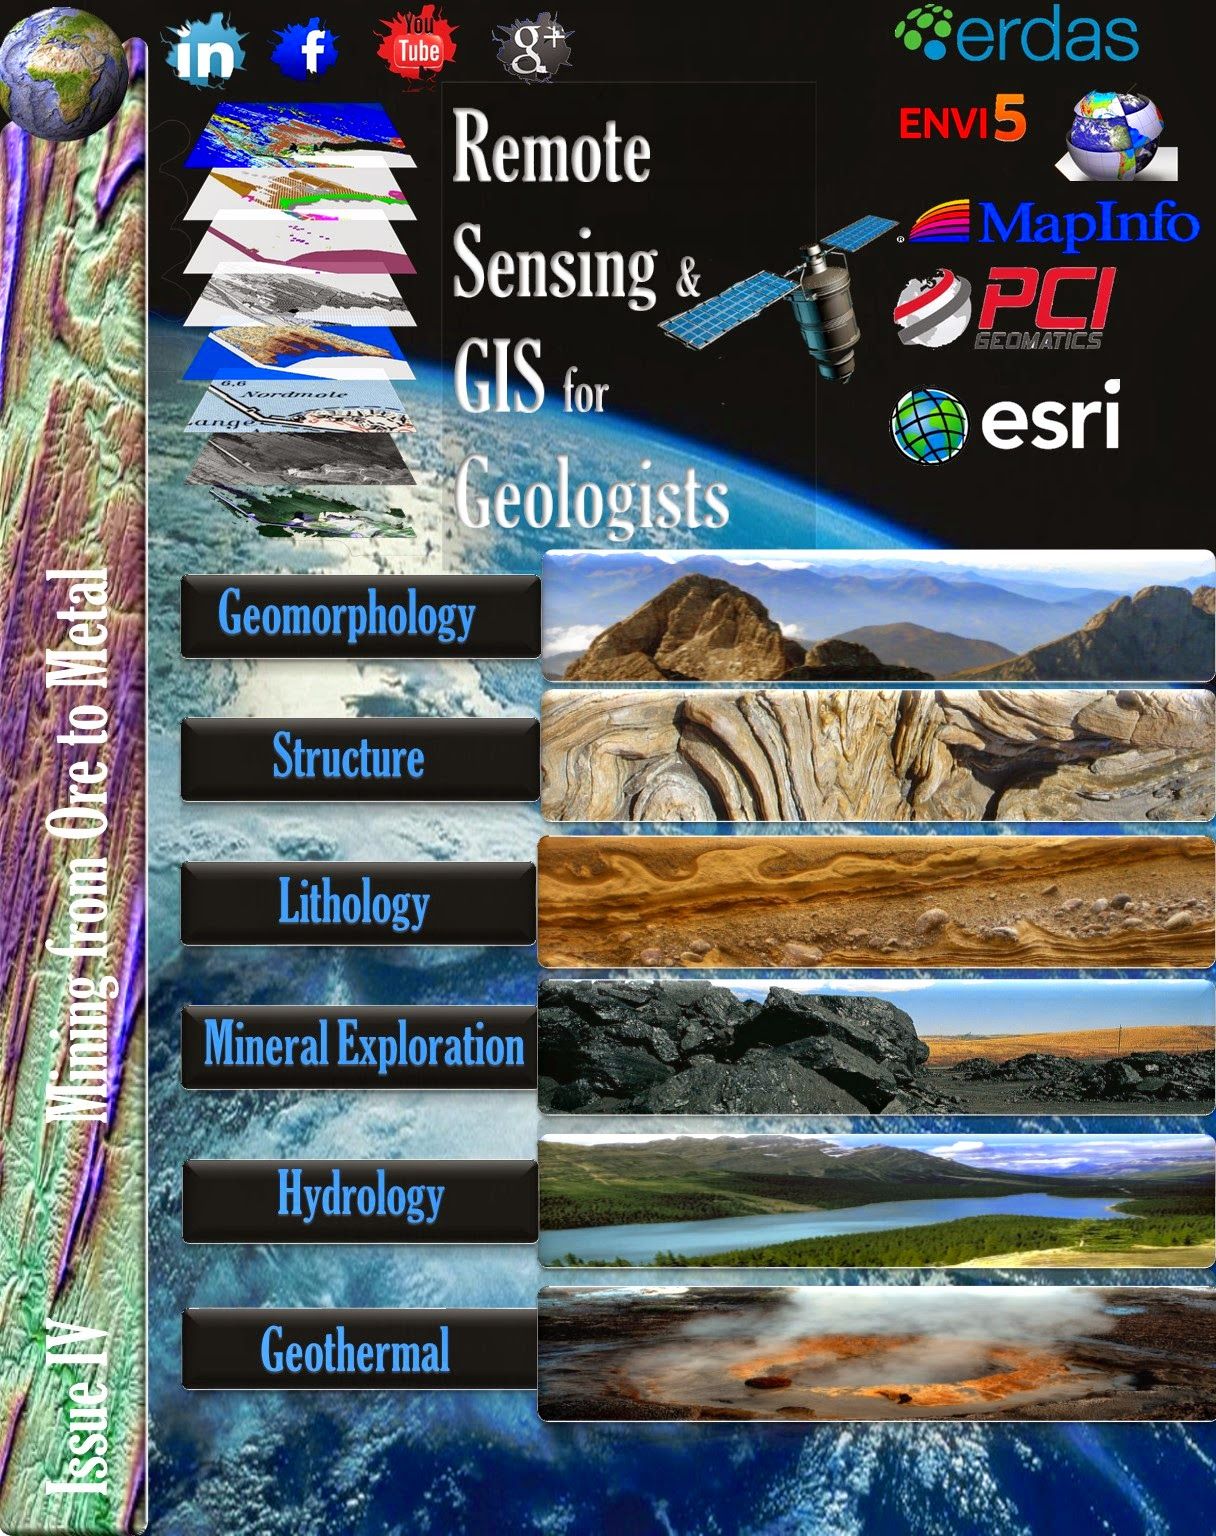 Remote Sensing and GIS for Geologists